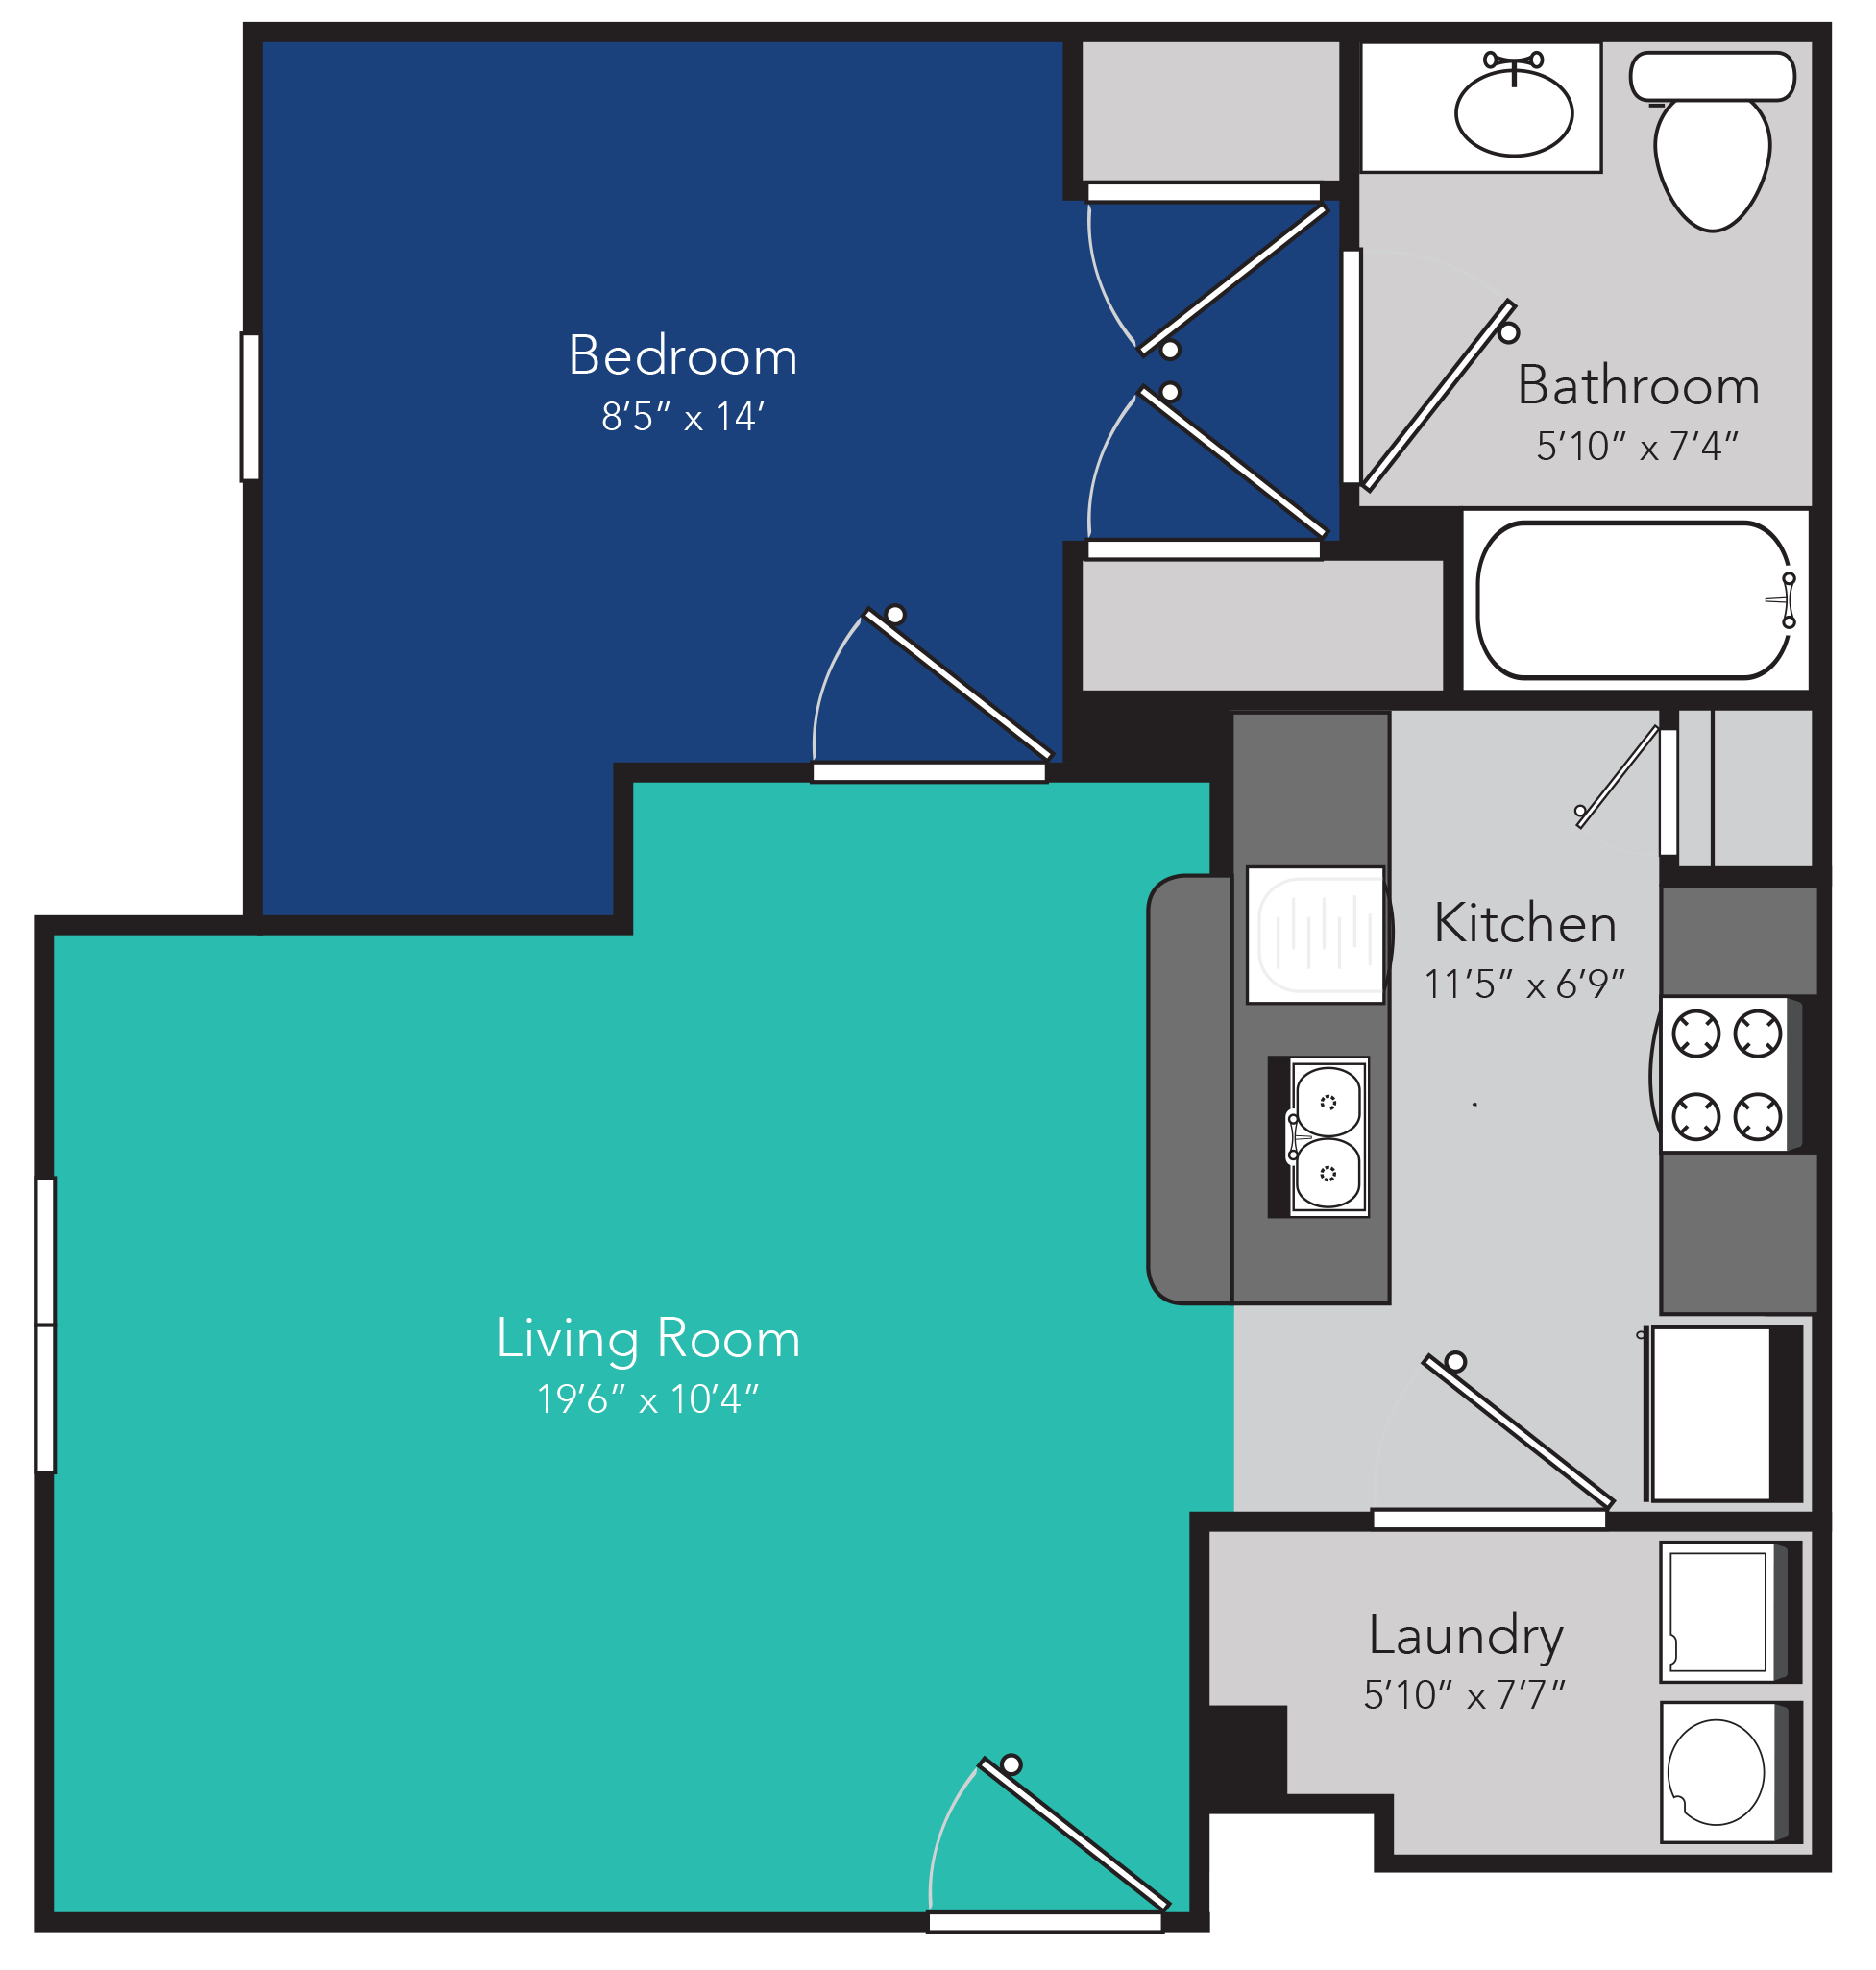 Hinesville ga apartments independence place floor plans - One bedroom apartments in hinesville ga ...